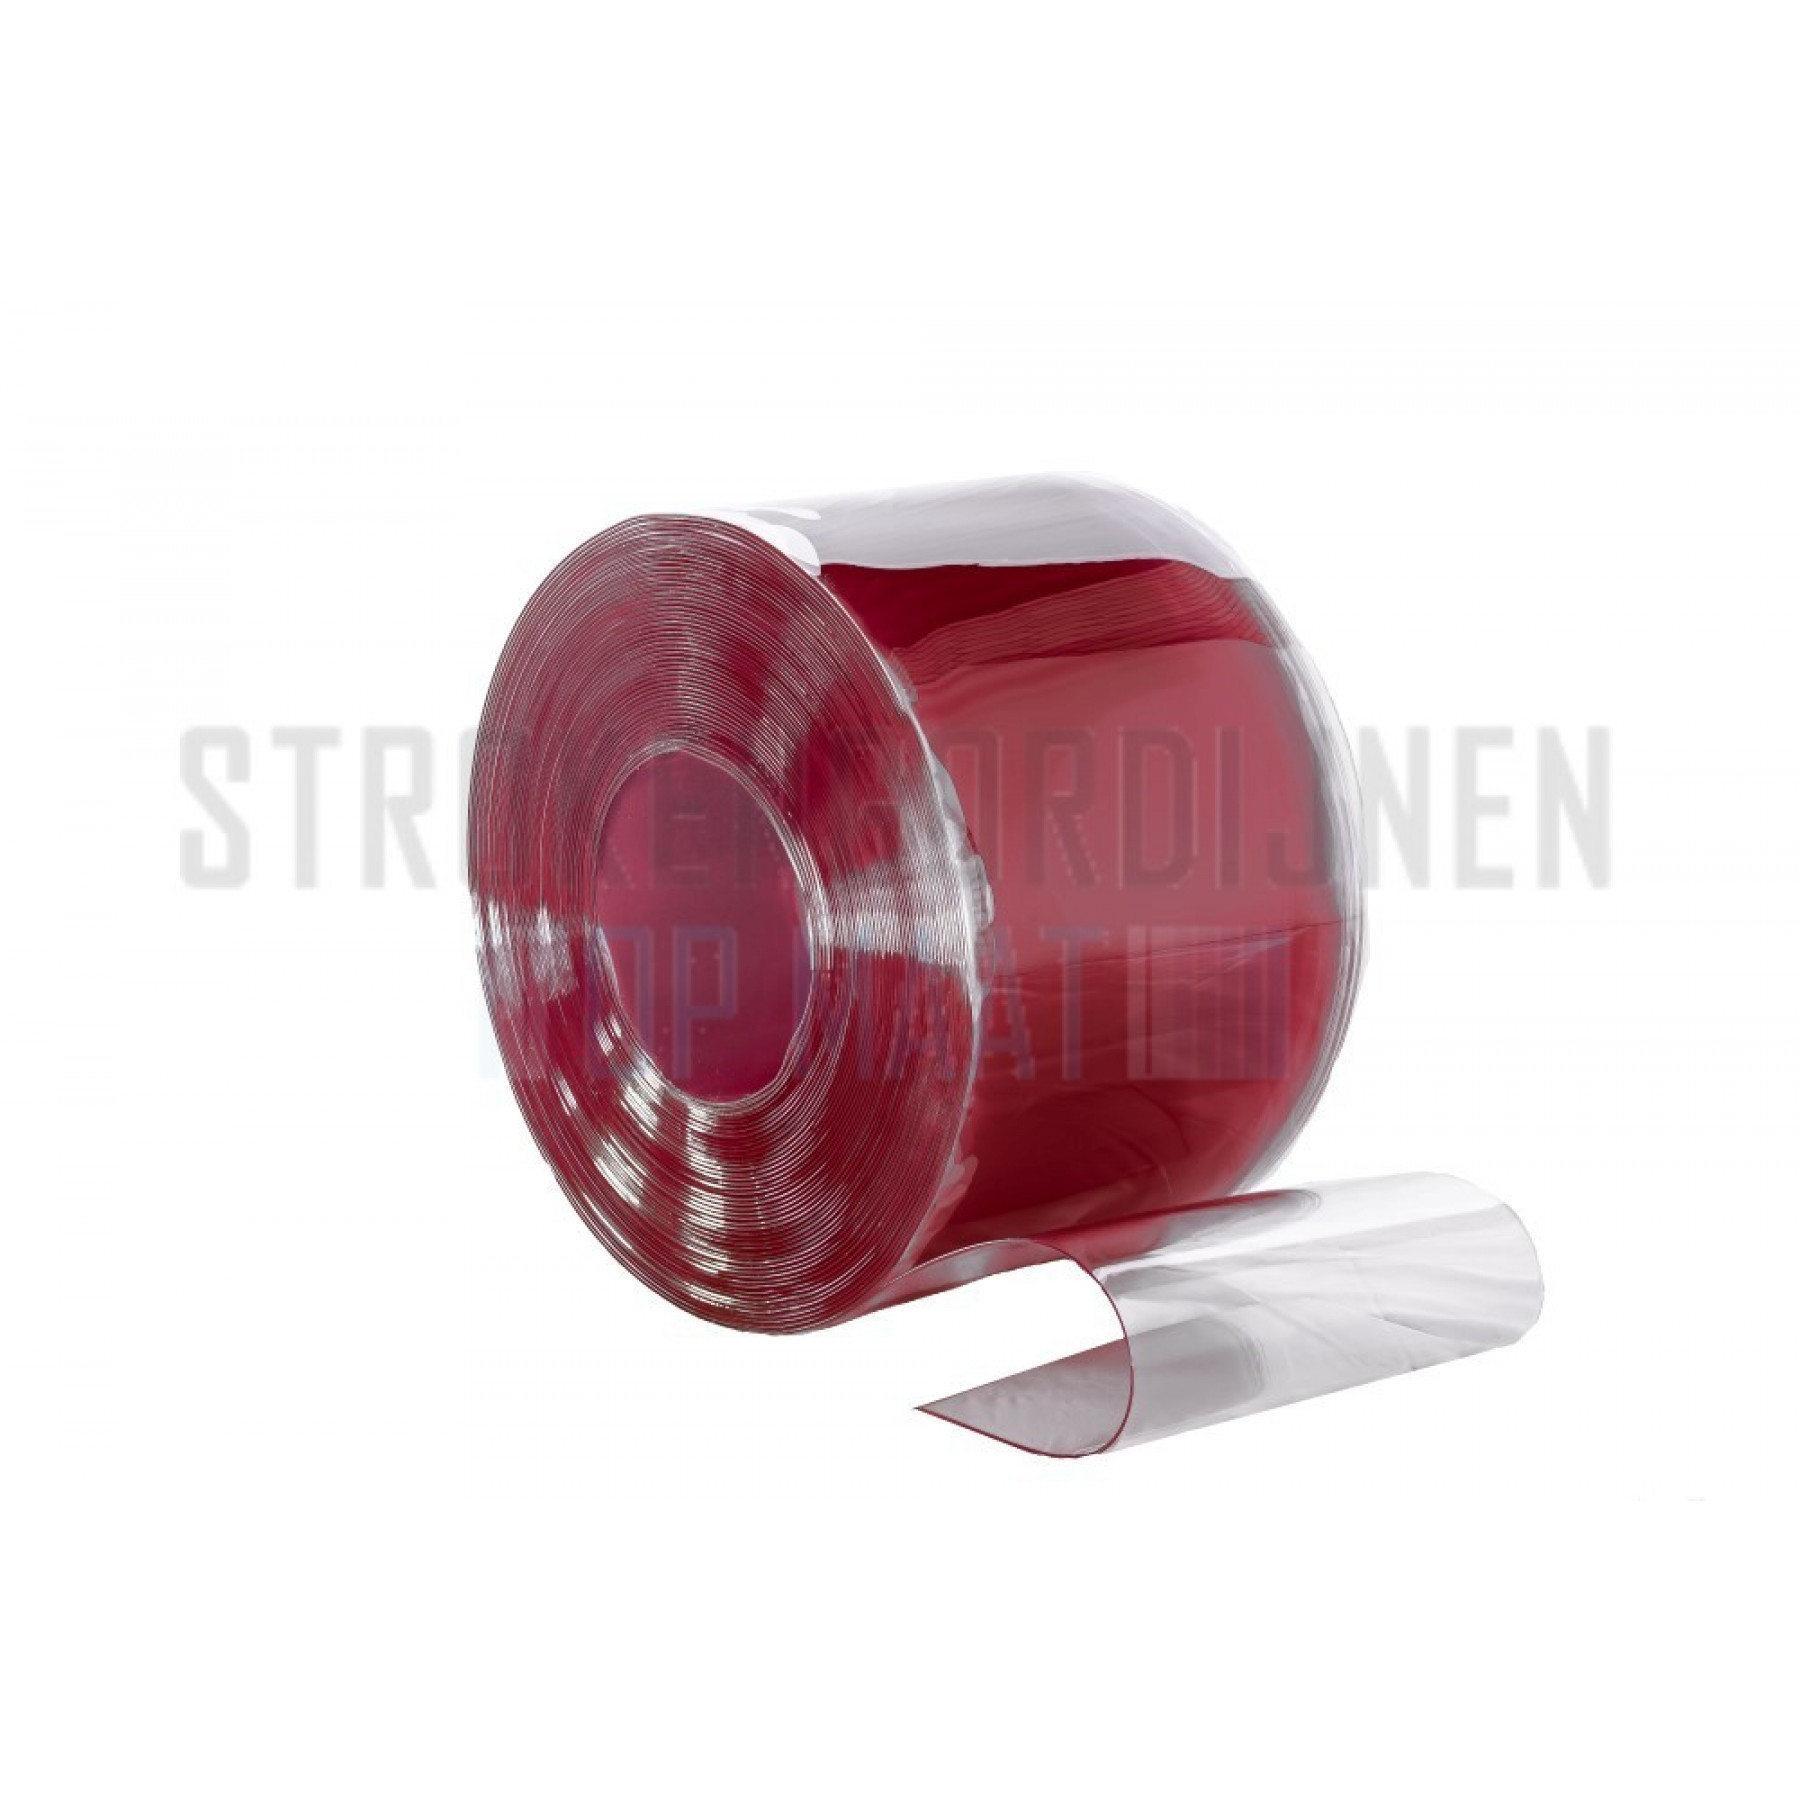 pvc rolle 400mm breit 4mm dick 50 meter lang farbe rot transparent in pvc streifen. Black Bedroom Furniture Sets. Home Design Ideas